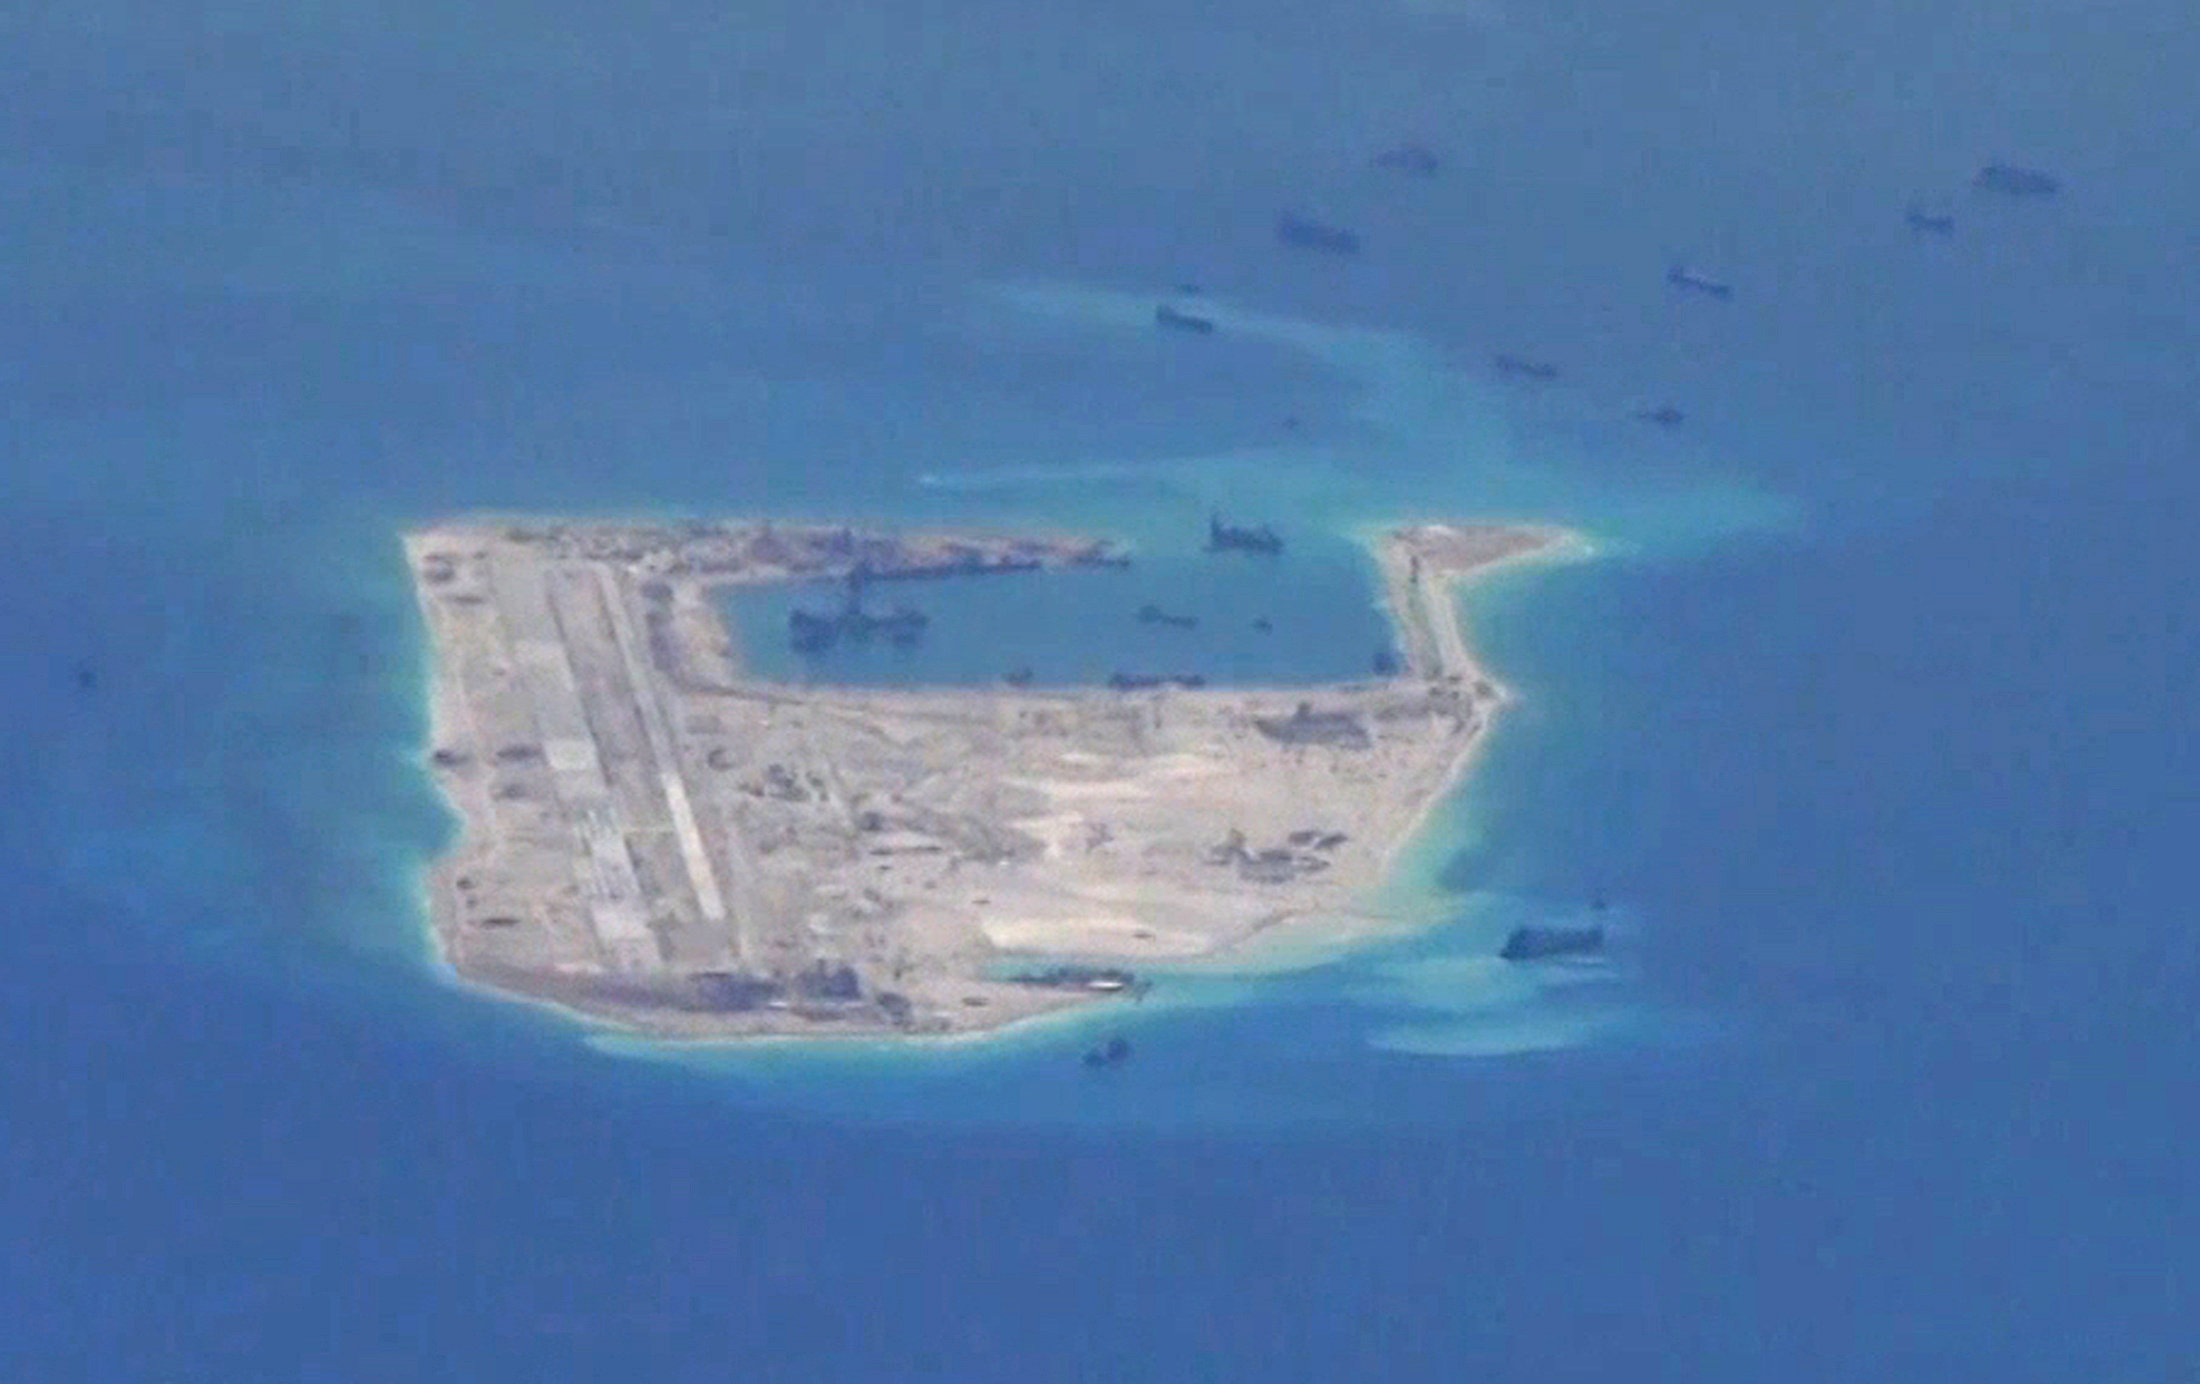 FILE PHOTO: Chinese dredging vessels are purportedly seen in the waters around Fiery Cross Reef in the disputed Spratly Islands in the South China Sea in this still image from video taken by a P-8A Poseidon surveillance aircraft provided by the United States Navy May 21, 2015. U.S. Navy/Handout via Reuters/File Photo